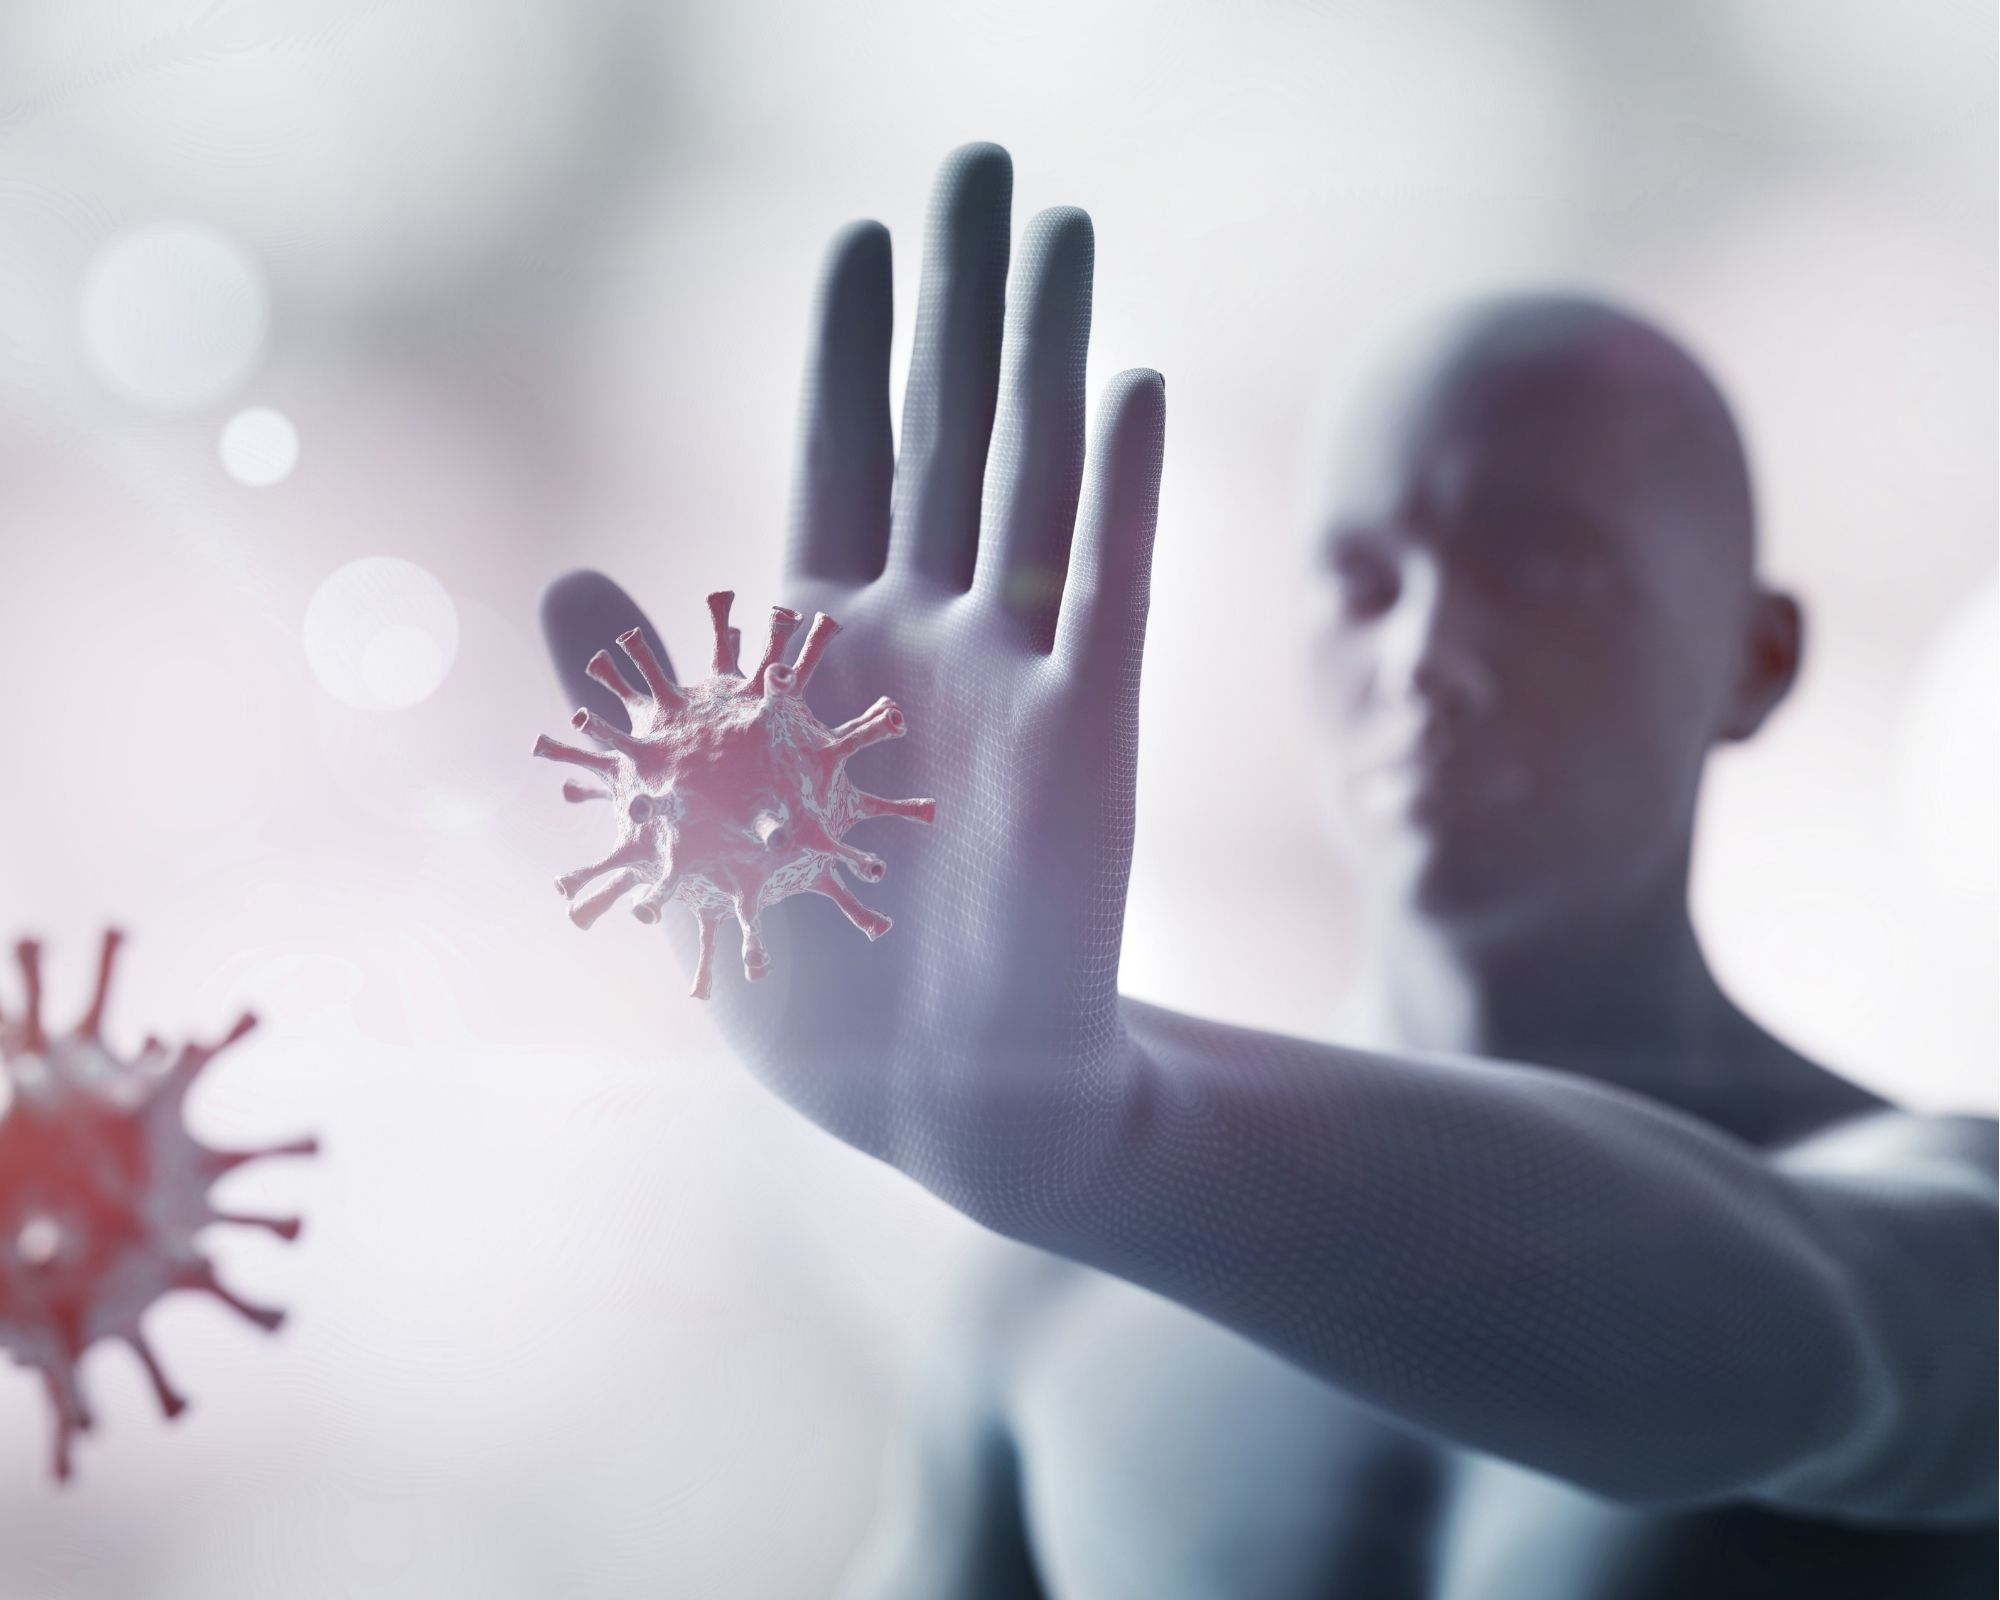 Person shaped figure holding out his hand to stop germs - Indicating a Healthy Immune System